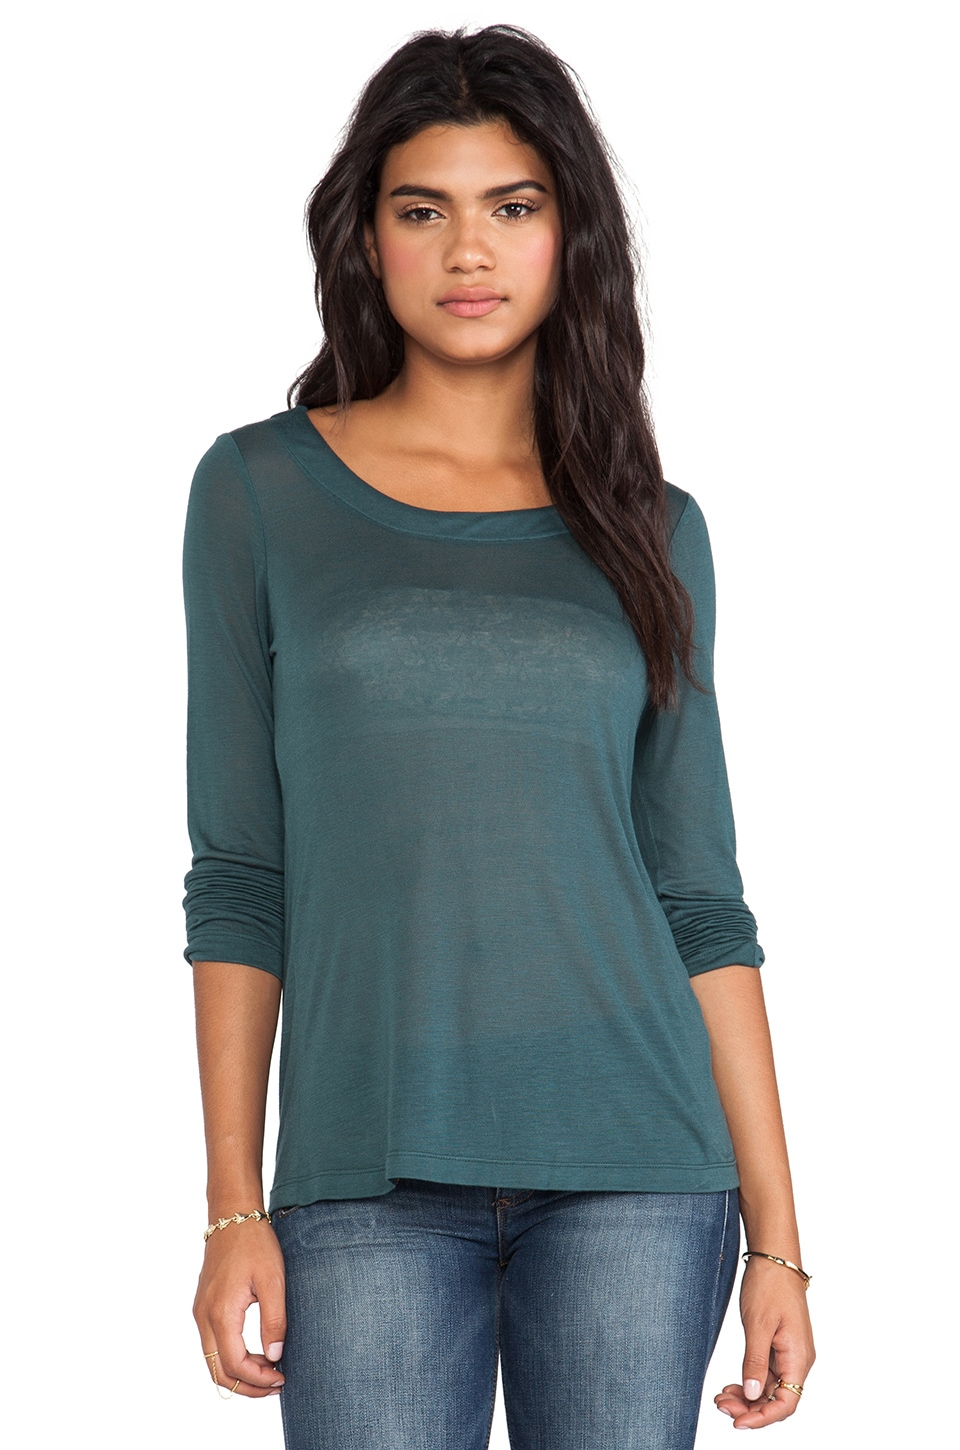 Kain Sheer Jersey Torrey Long Sleeve in Pine Green